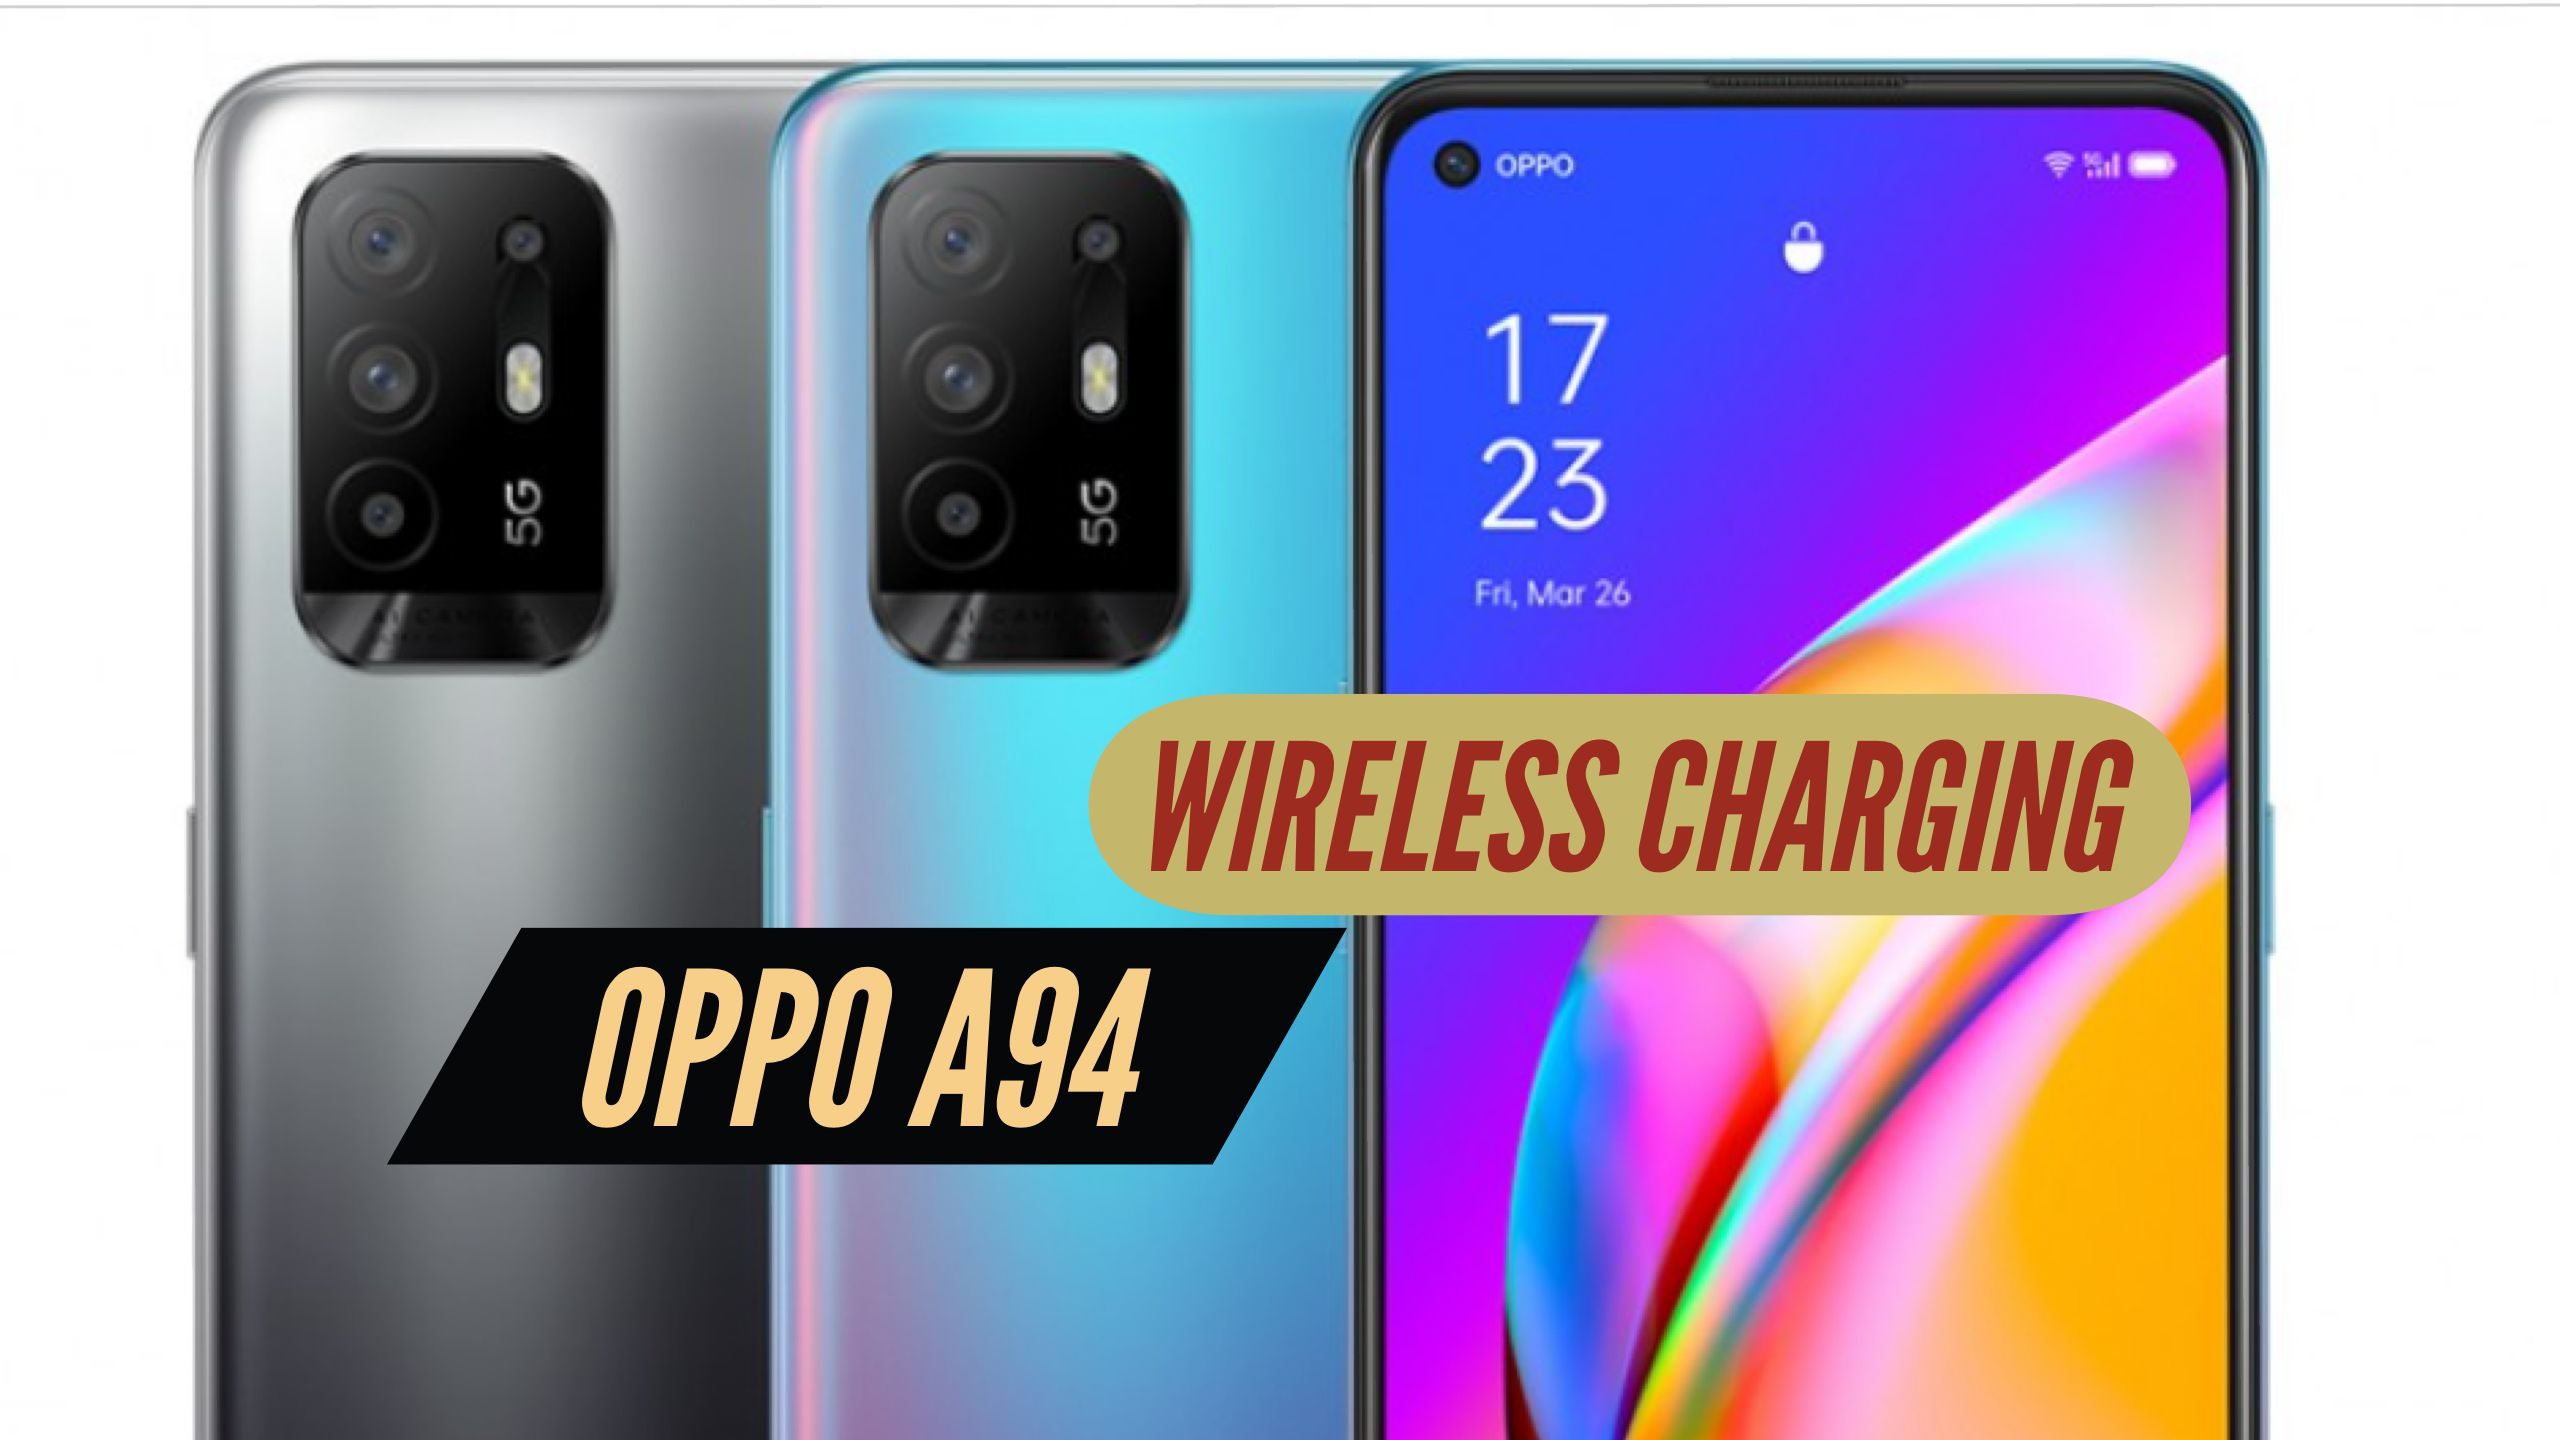 OPPO A94 Wireless Charging